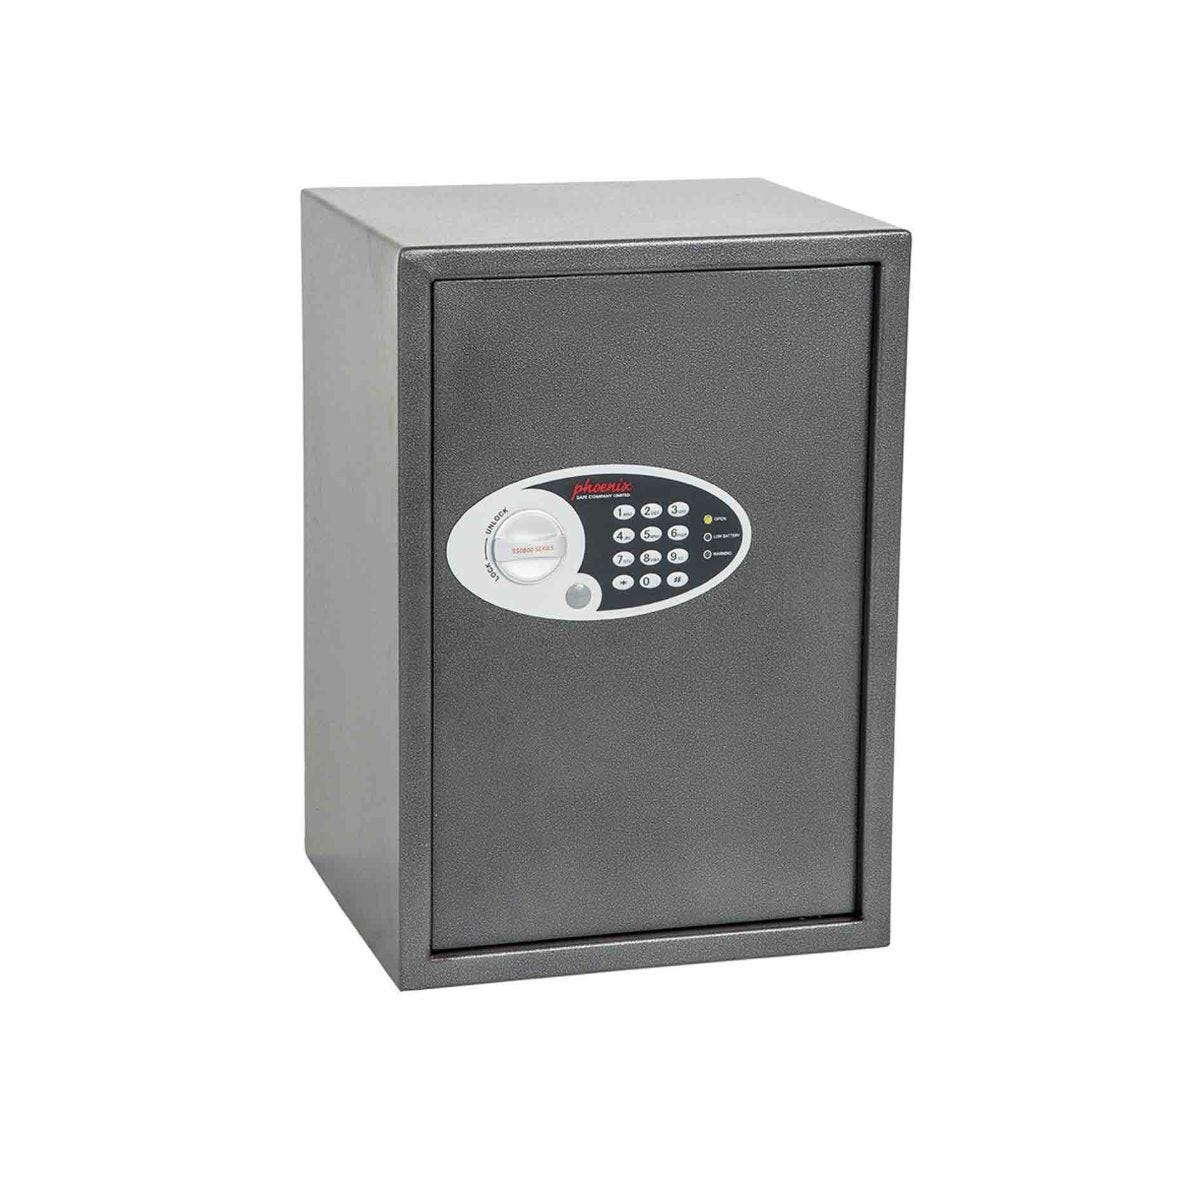 Phoenix Vela Home and Office Security Safe with Electronic Lock Size 4